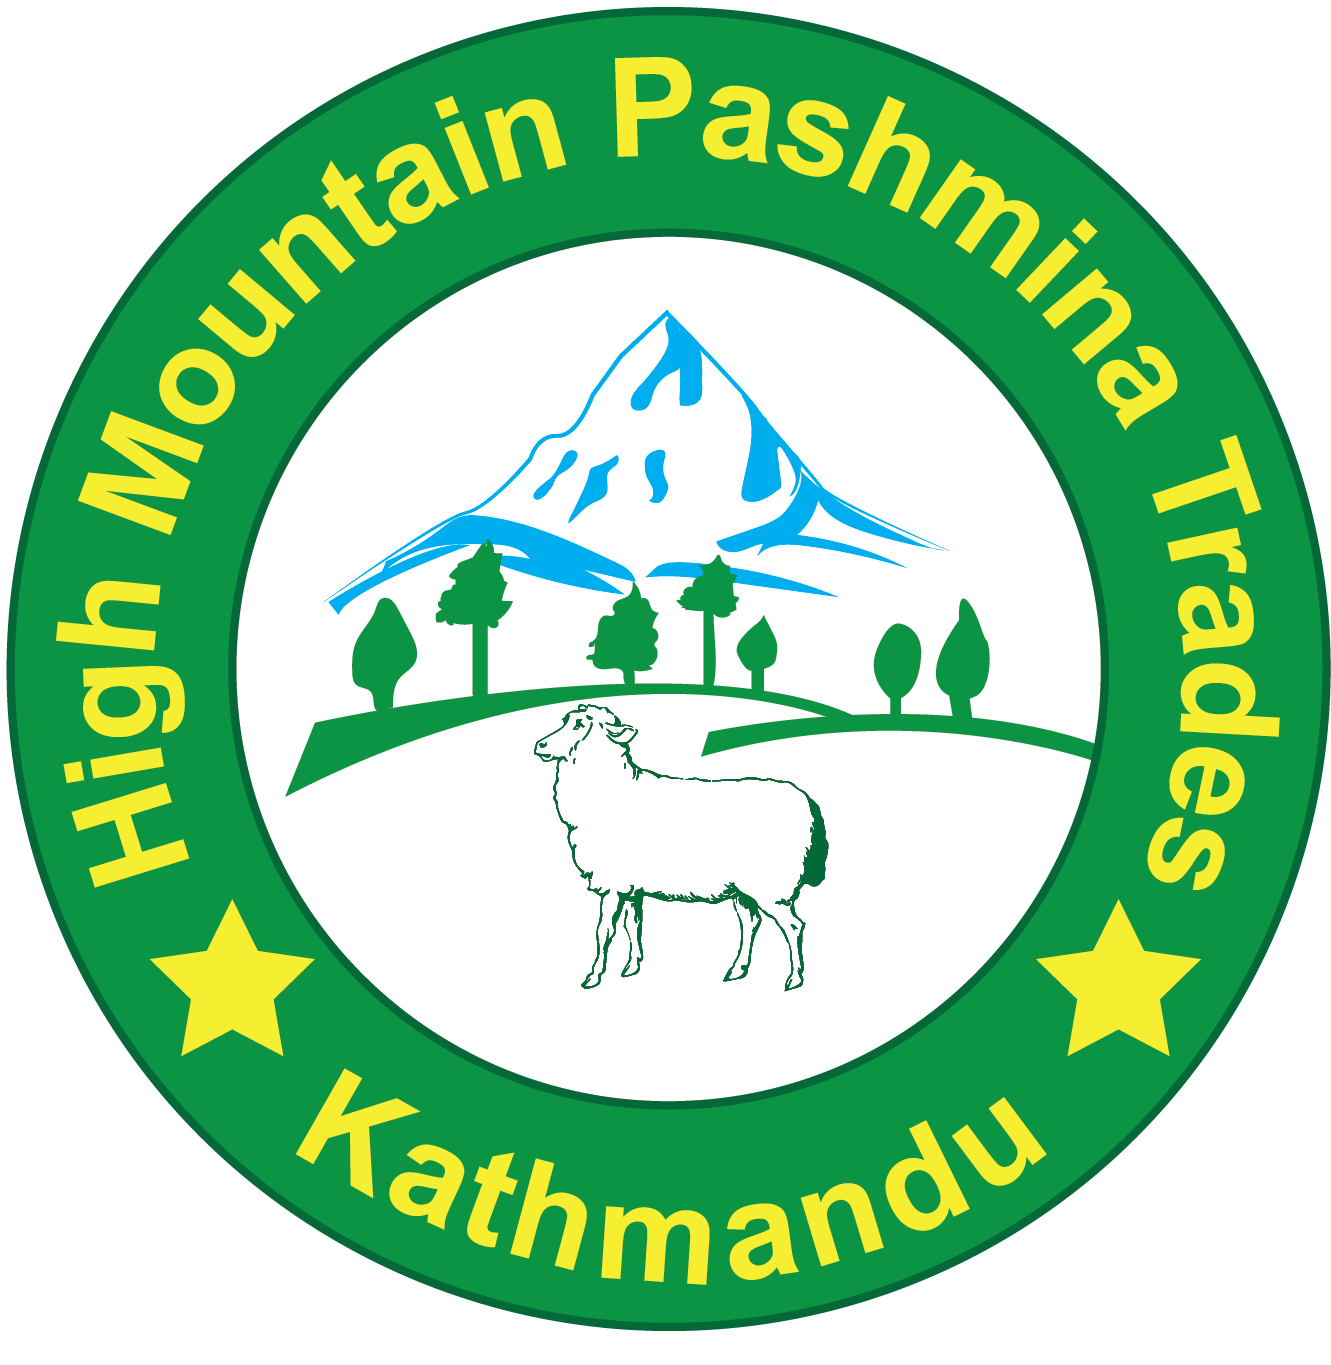 High Mountain Pashmina Traders